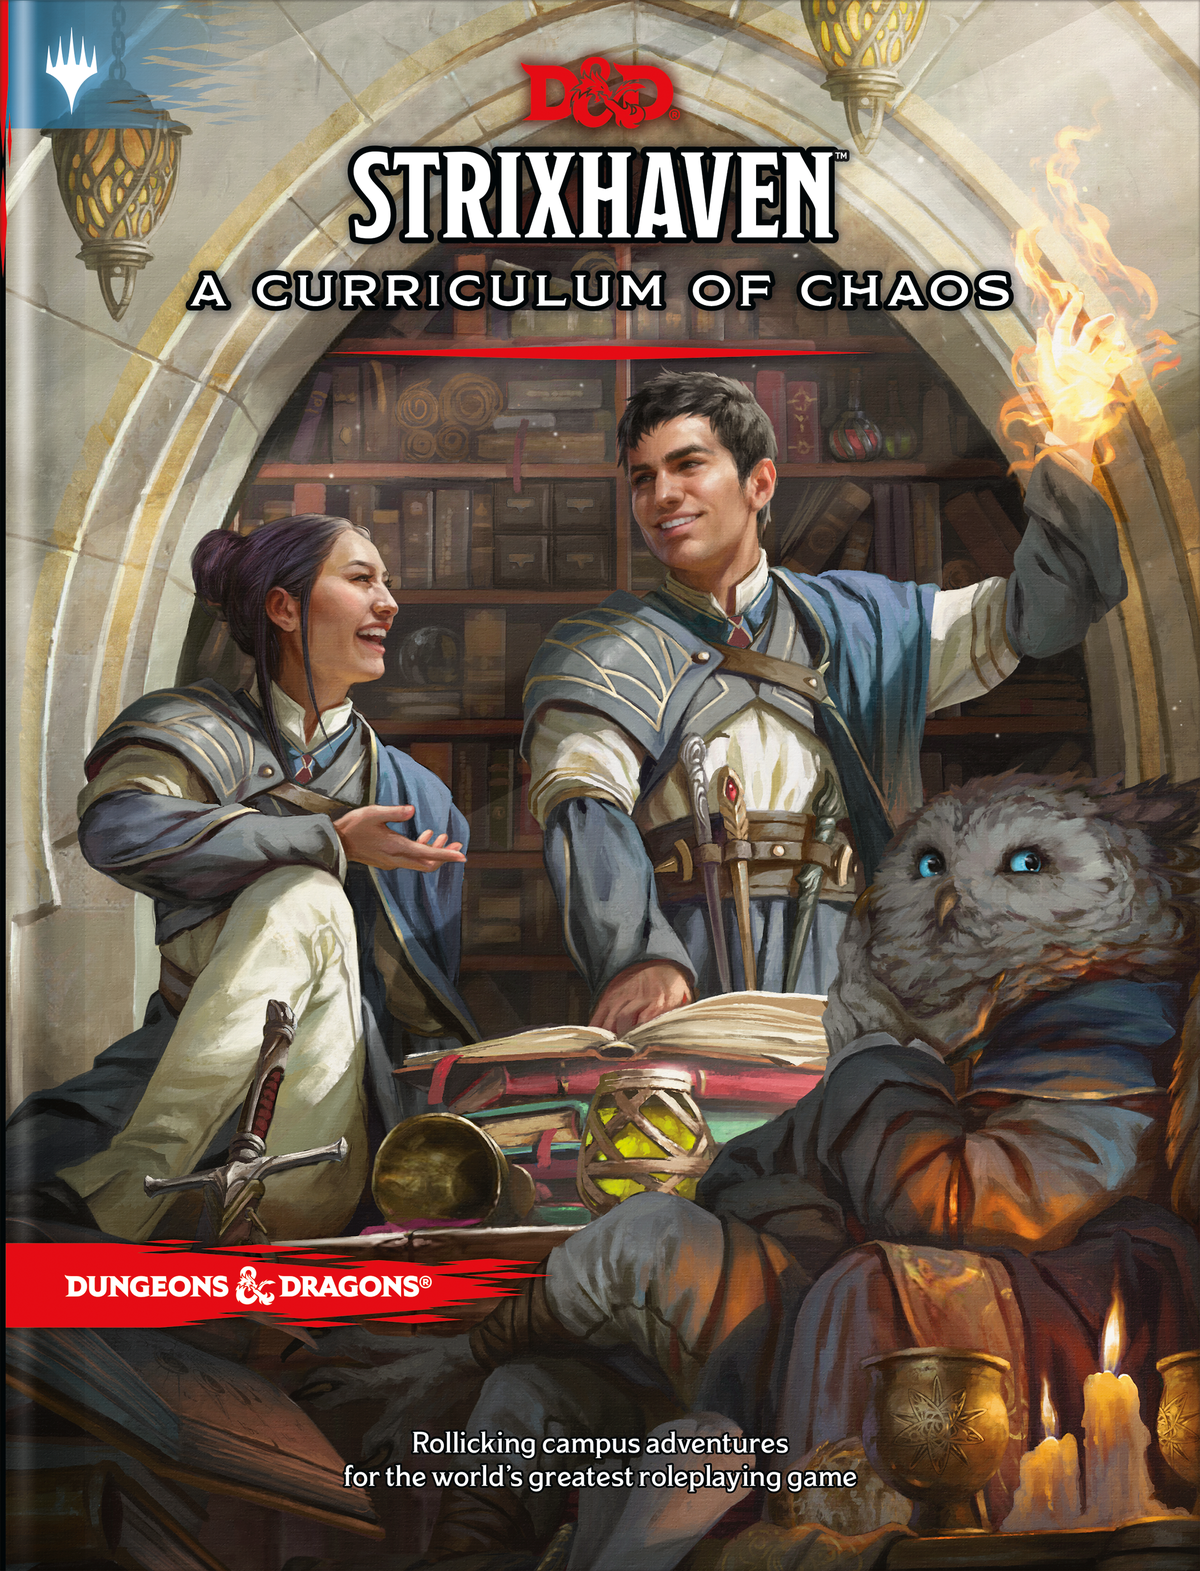 The primary cover of Strixhaven: A Curriculum of Chaos